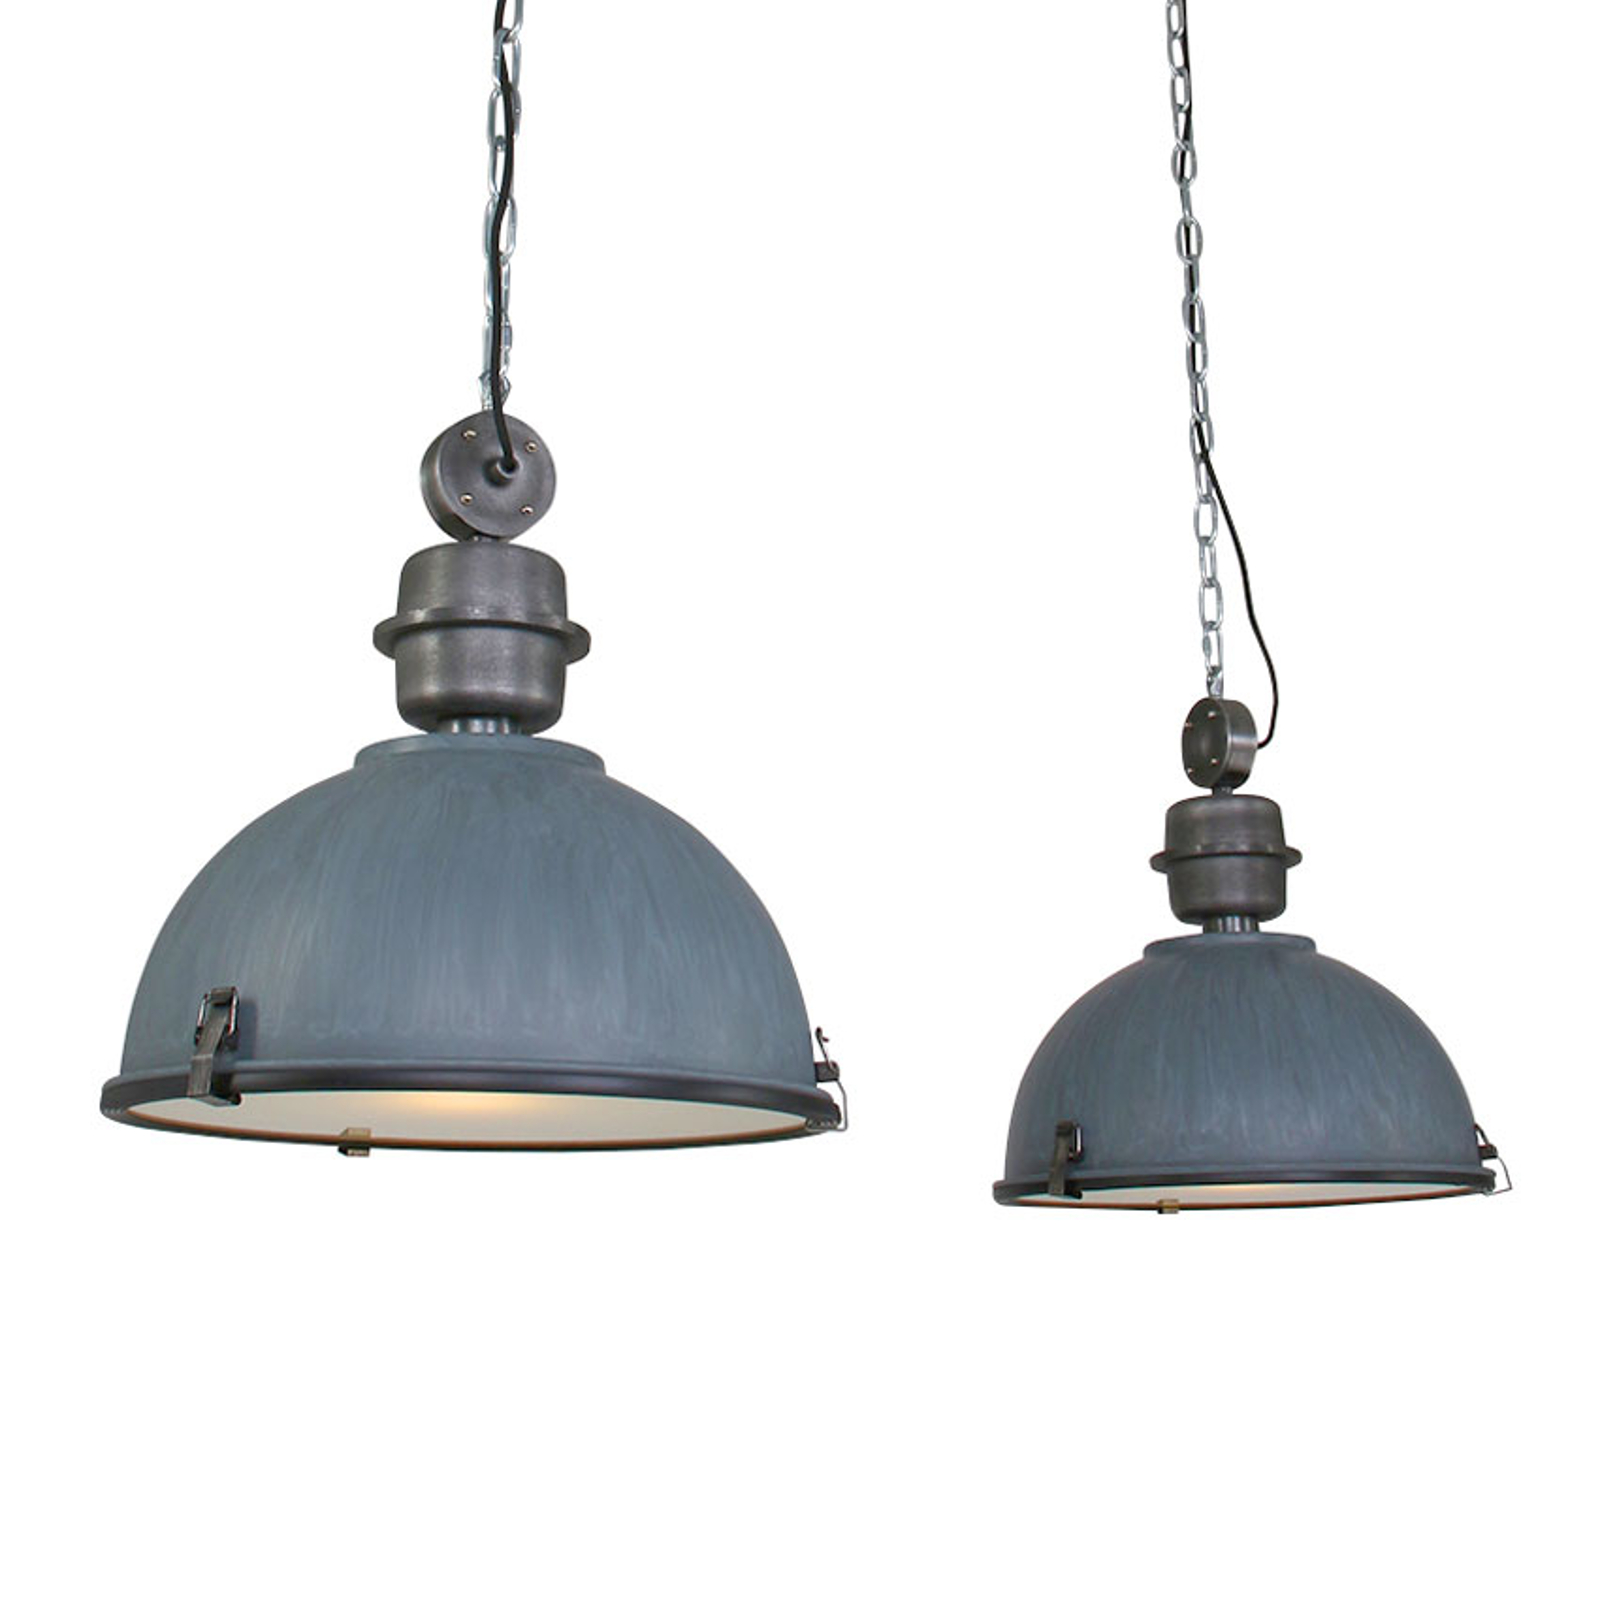 Suspension Bikkel 2 lampes, gris